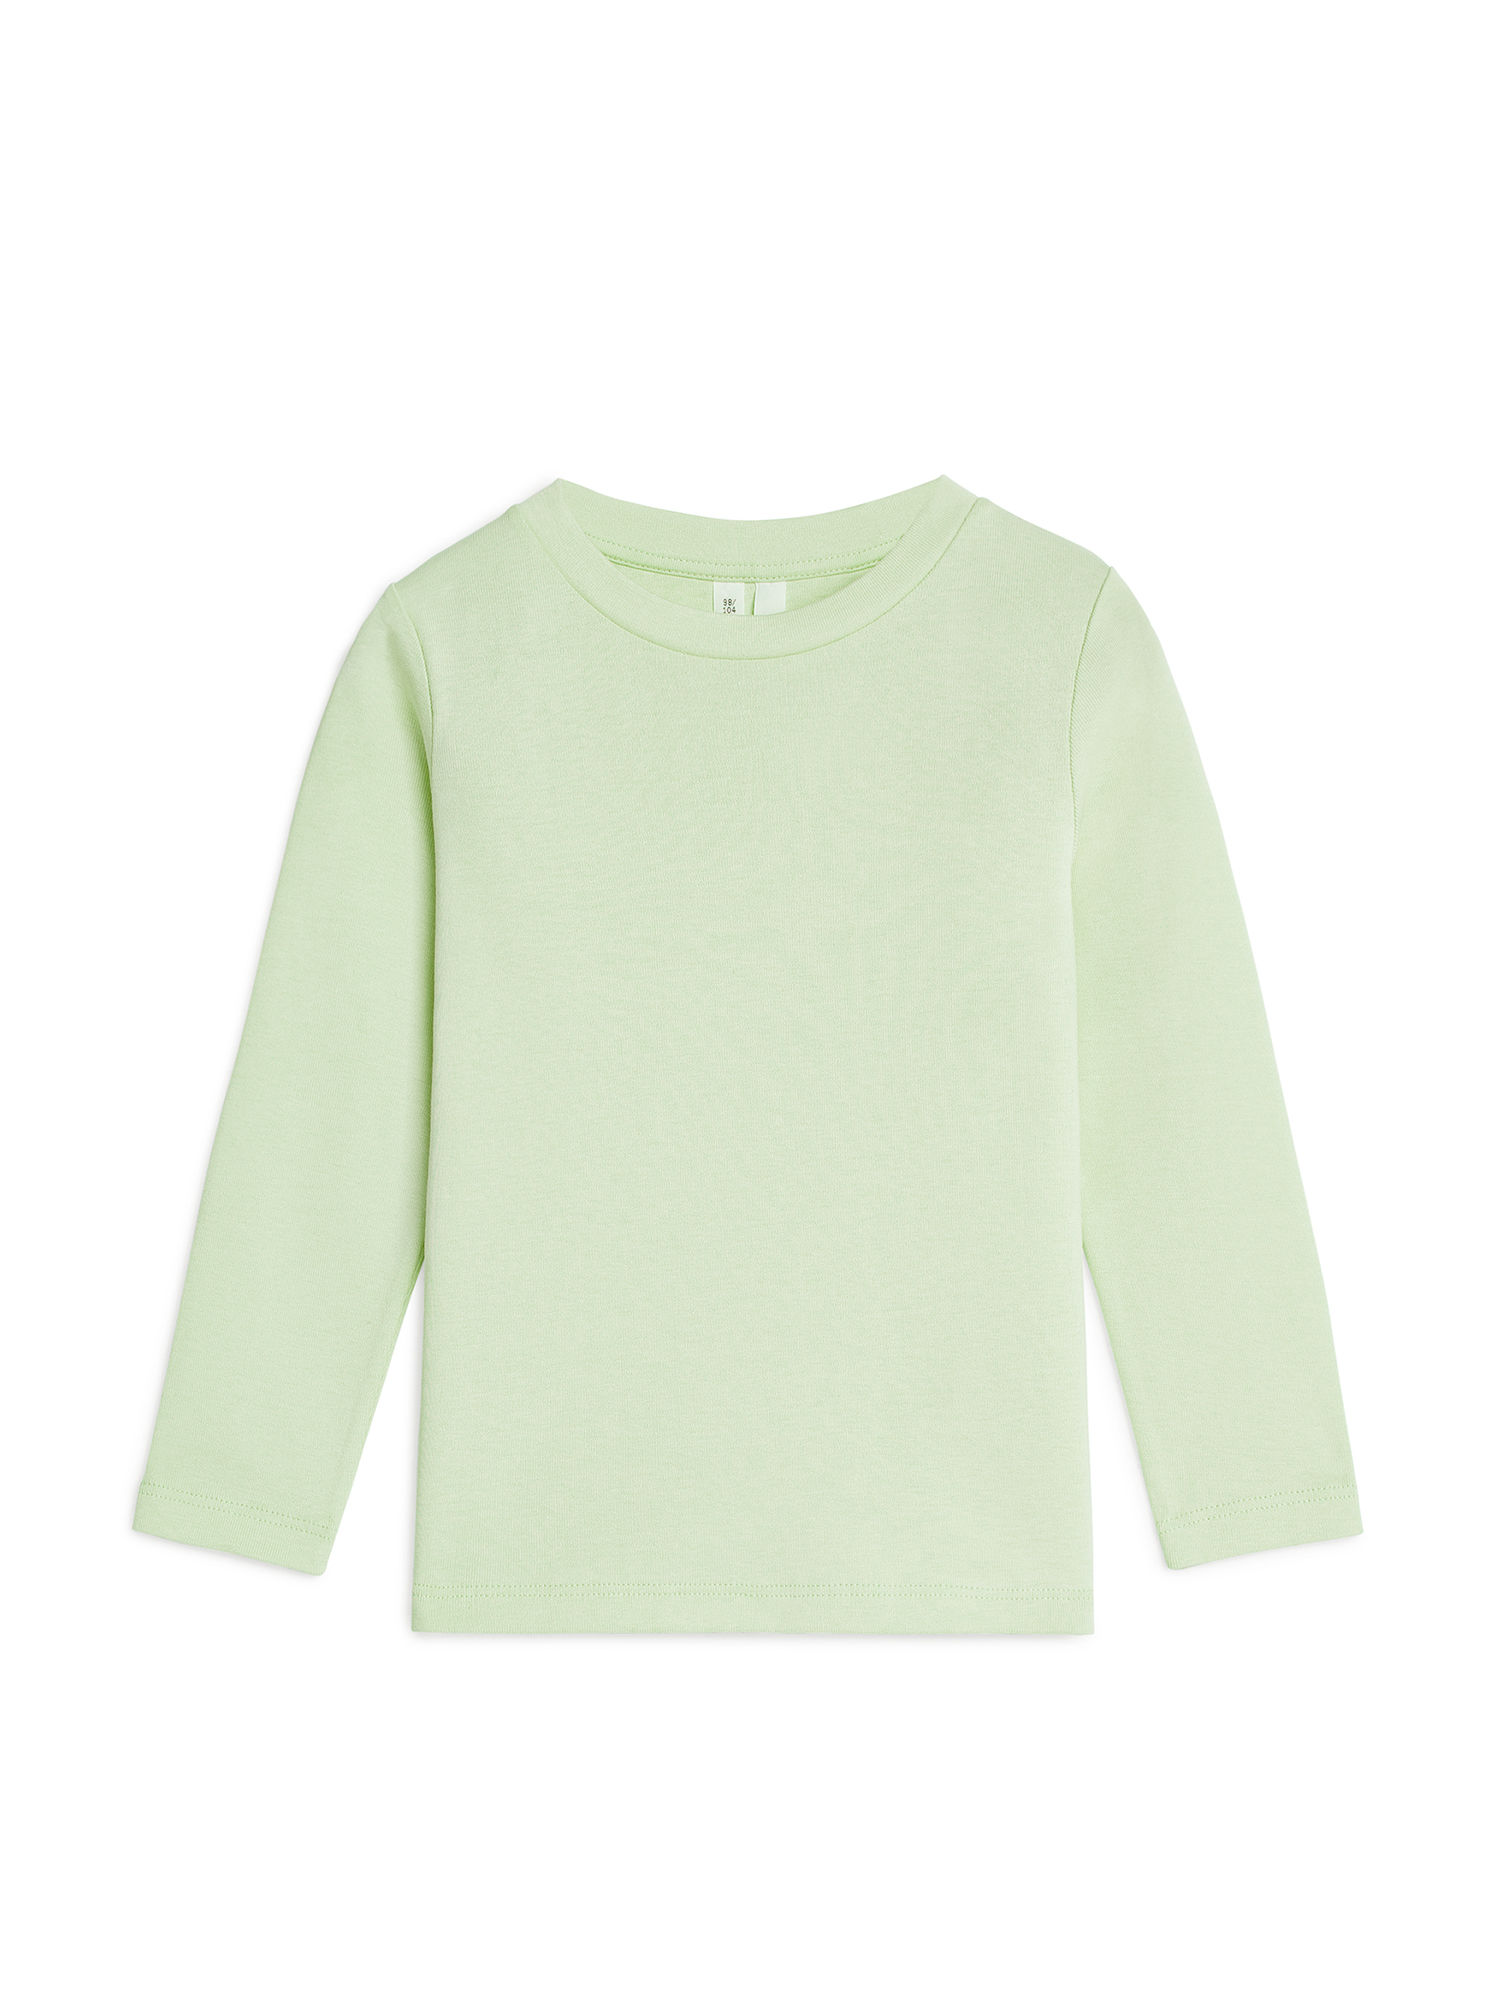 Fabric Swatch image of Arket long-sleeve t-shirt in green